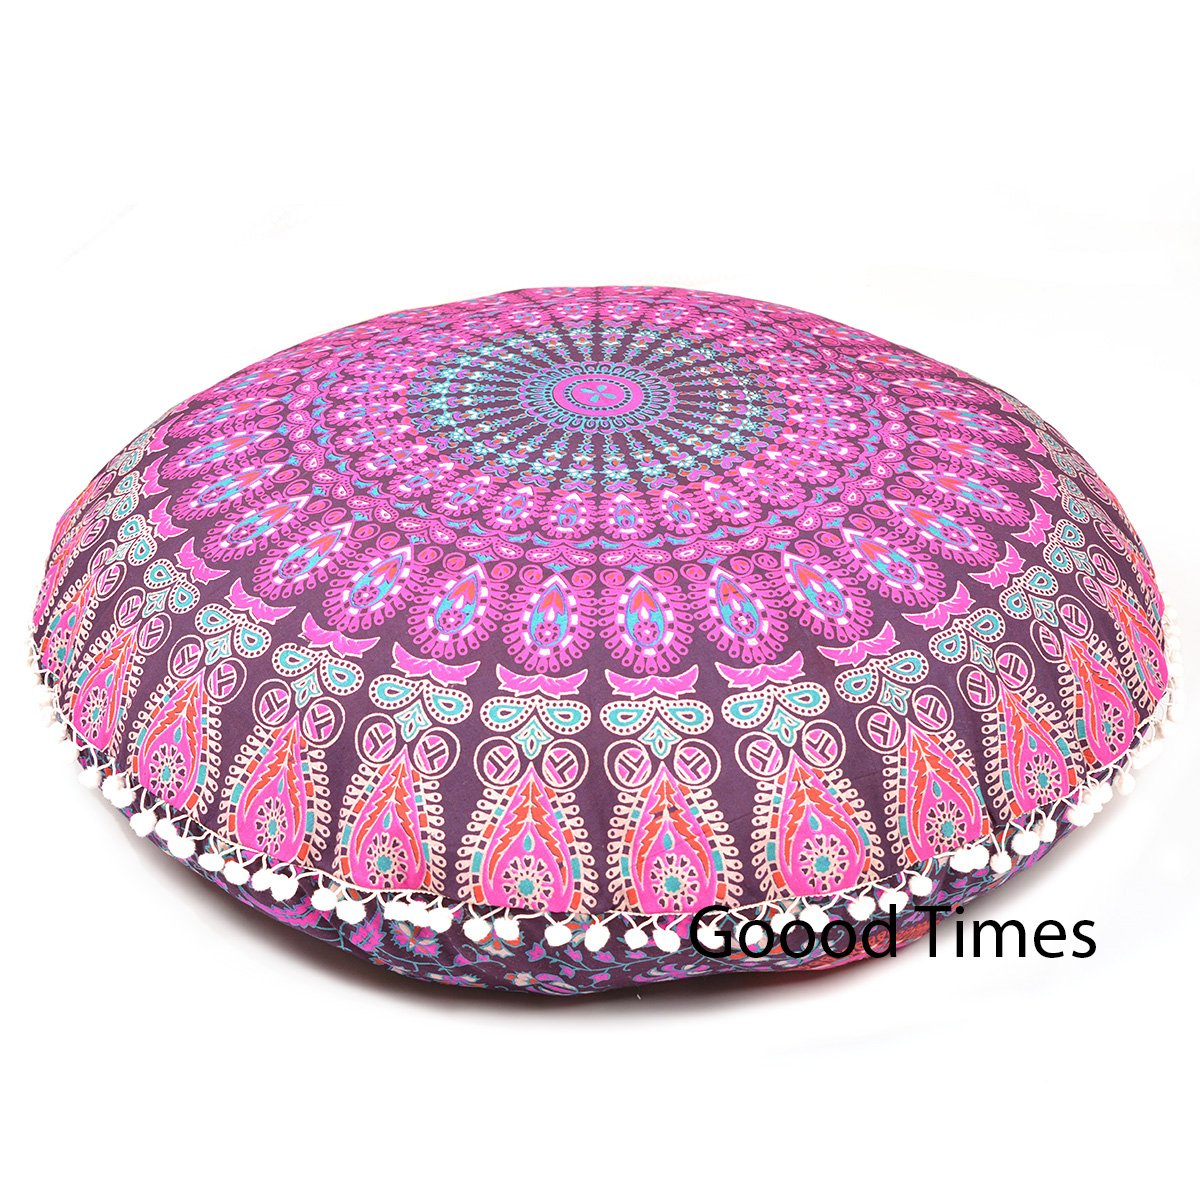 Goood Times Pink Throw Decorative Floor Pillow Cushion Cover Mandala - 32''